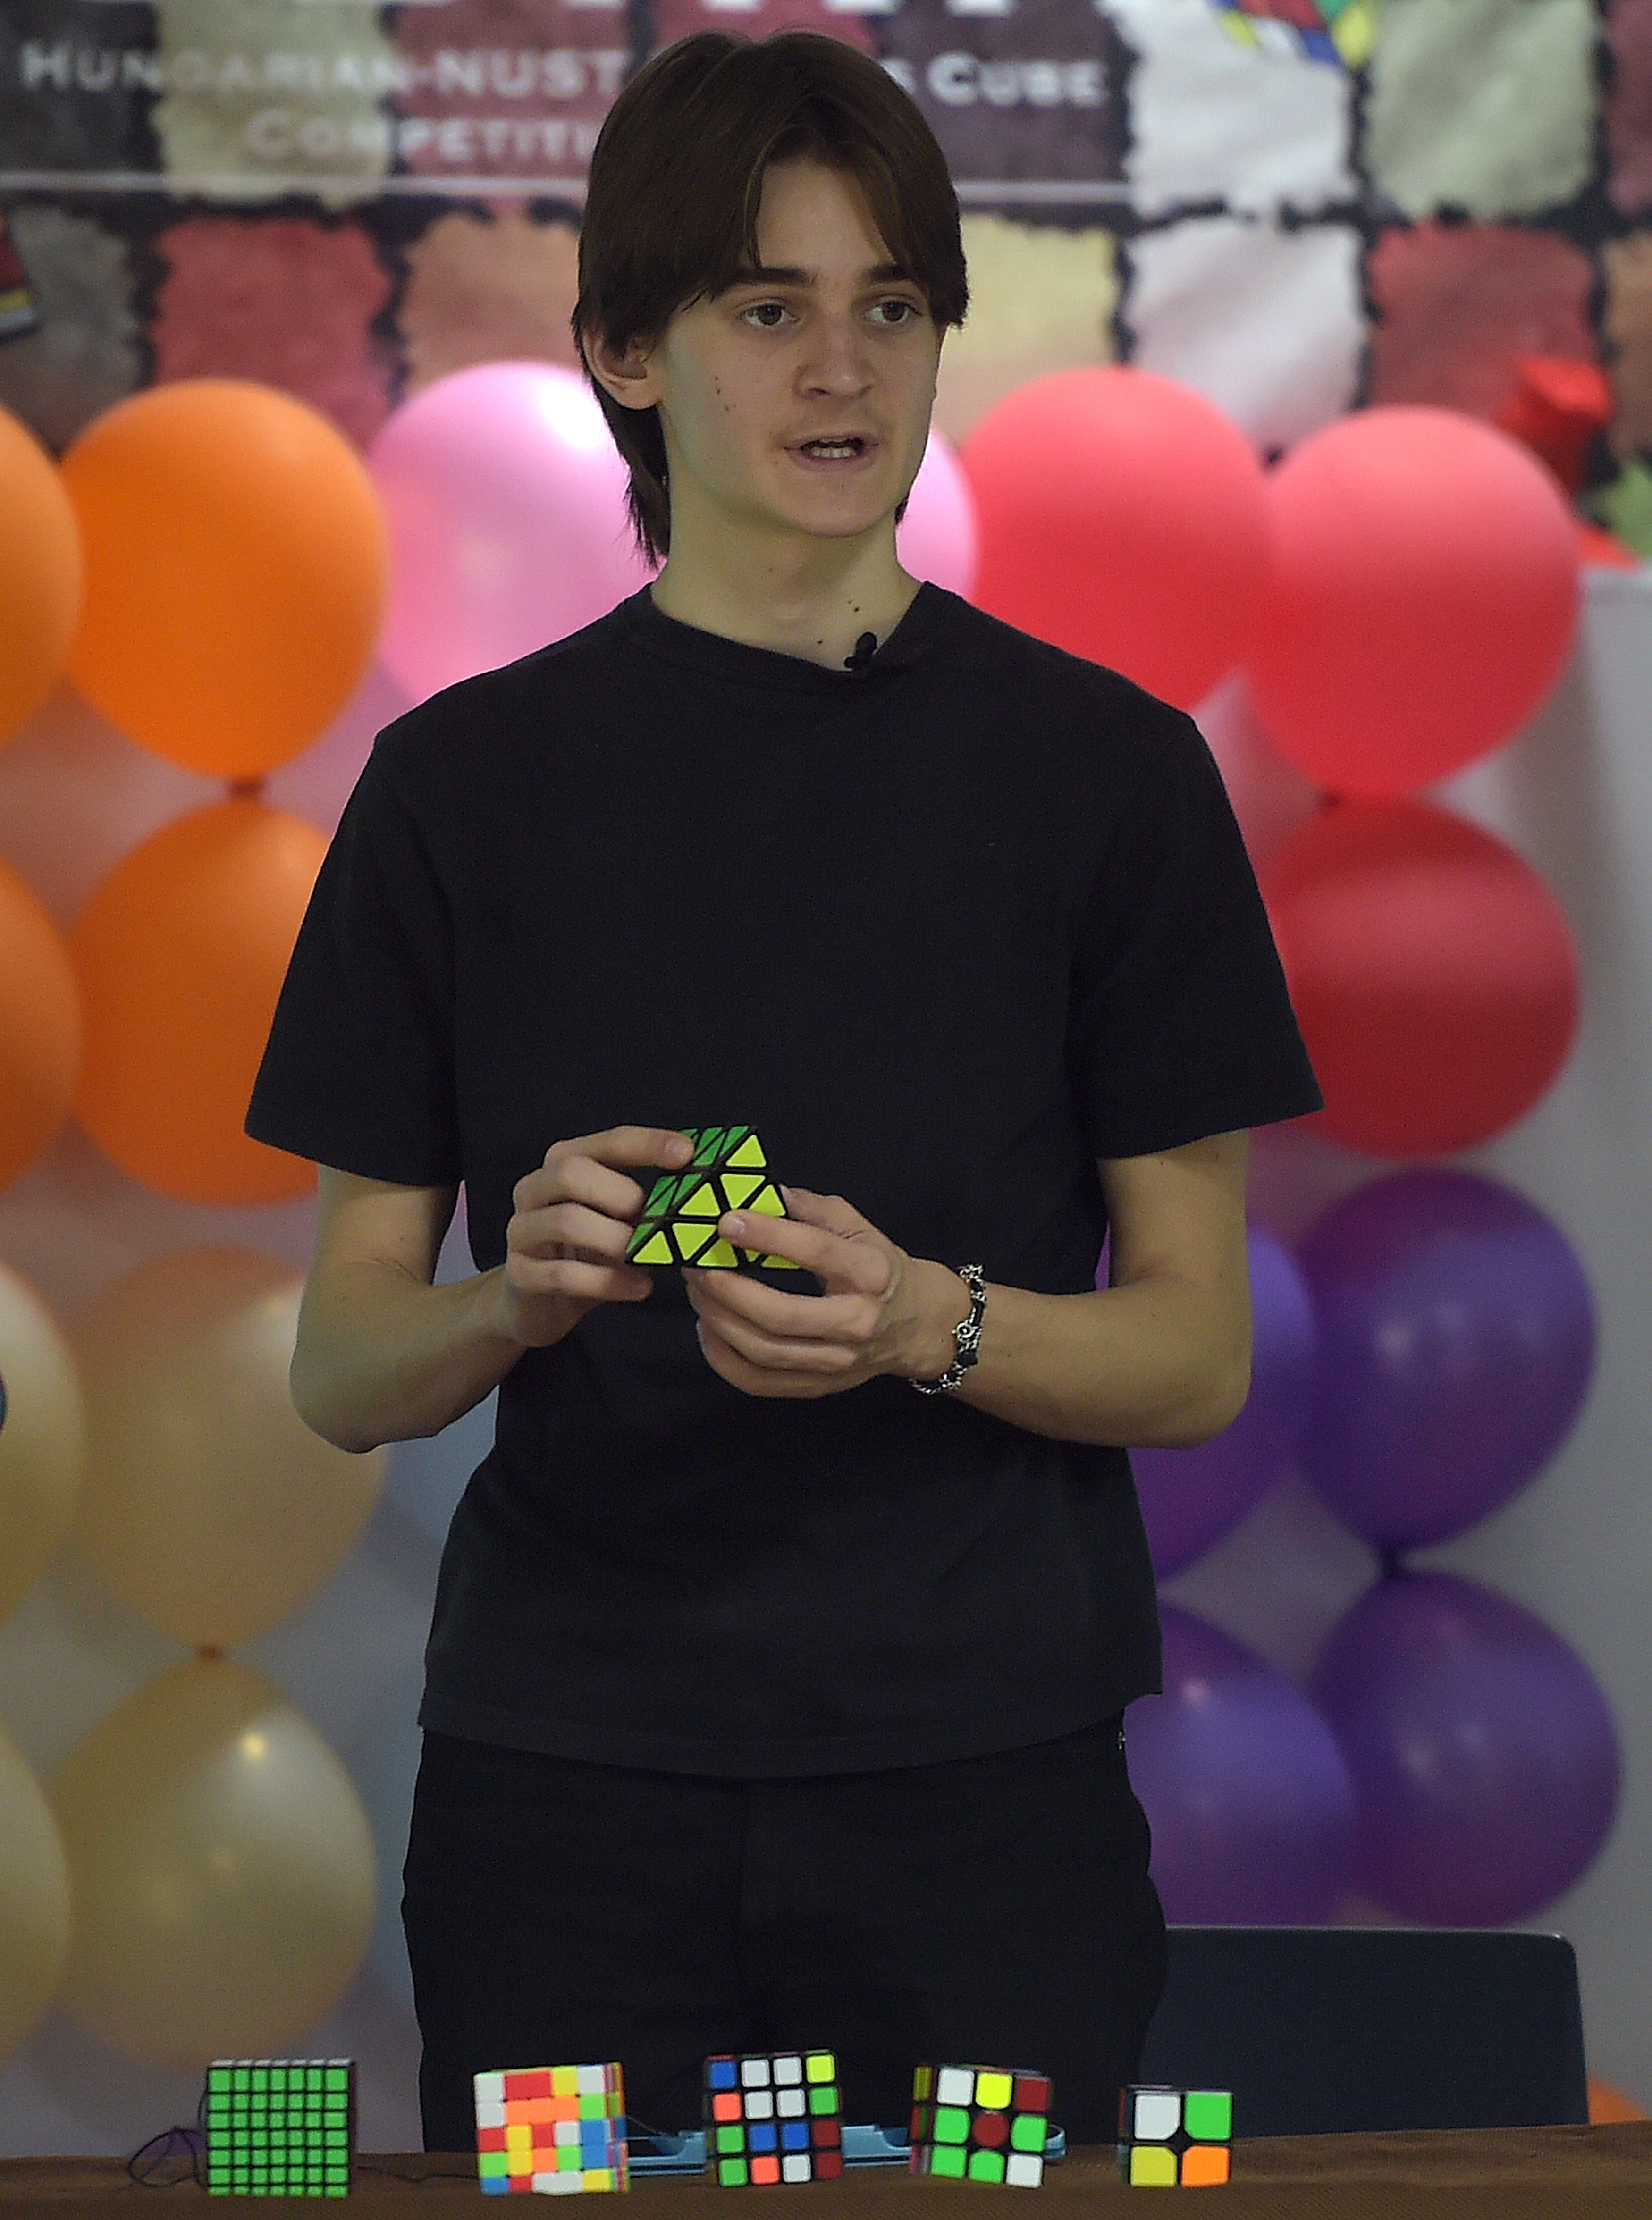 Hunor Bozsing, three times Rubik's Cube Hungarian national champion, demonstrates solving a Rubik's Cube in front of Pakistani students at the National University of Sciences and Technology (NUST) in Islamabad on May 12, 2016. Hunor Bozsing says he got lucky eight years ago: searching for an old toy in his house in Budapest, he instead stumbled across a Rubik's Cube -- a twist of fate which launched him to international fame. Bozsing -- Hungary's three-time national Rubik's Cube champion, who holds six national records -- was in Pakistan on May 12 to organise the country's first Cube competition. / AFP PHOTO / AAMIR QURESHI